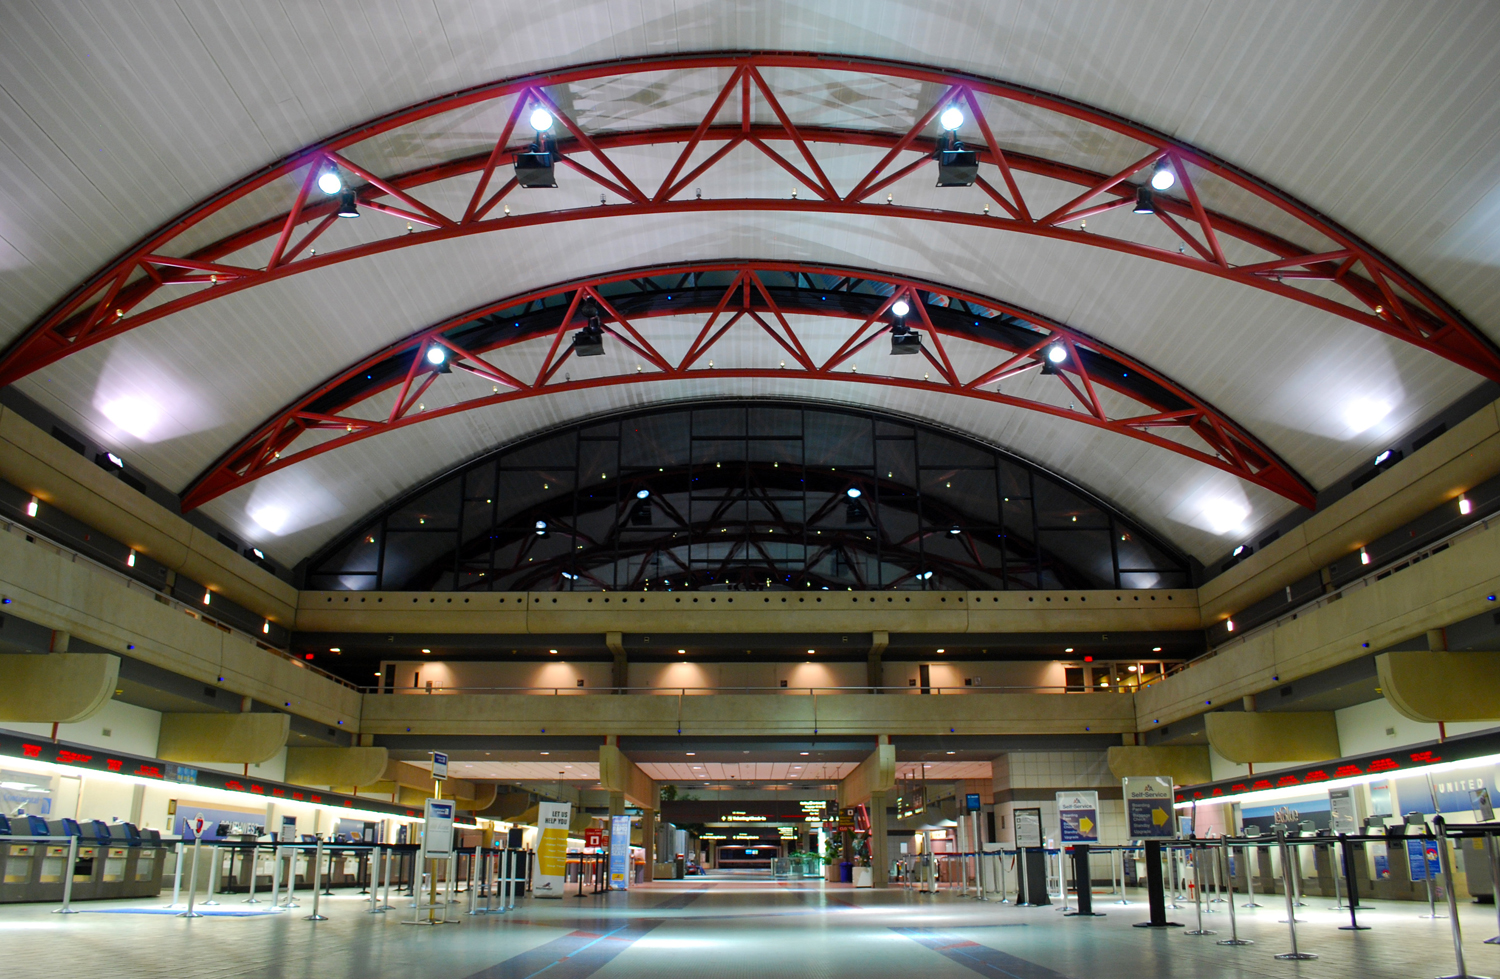 The 2019 operating budget for Pittsburgh International Airport is expected to increase by 3 percent, hitting an estimated $112.27 million.